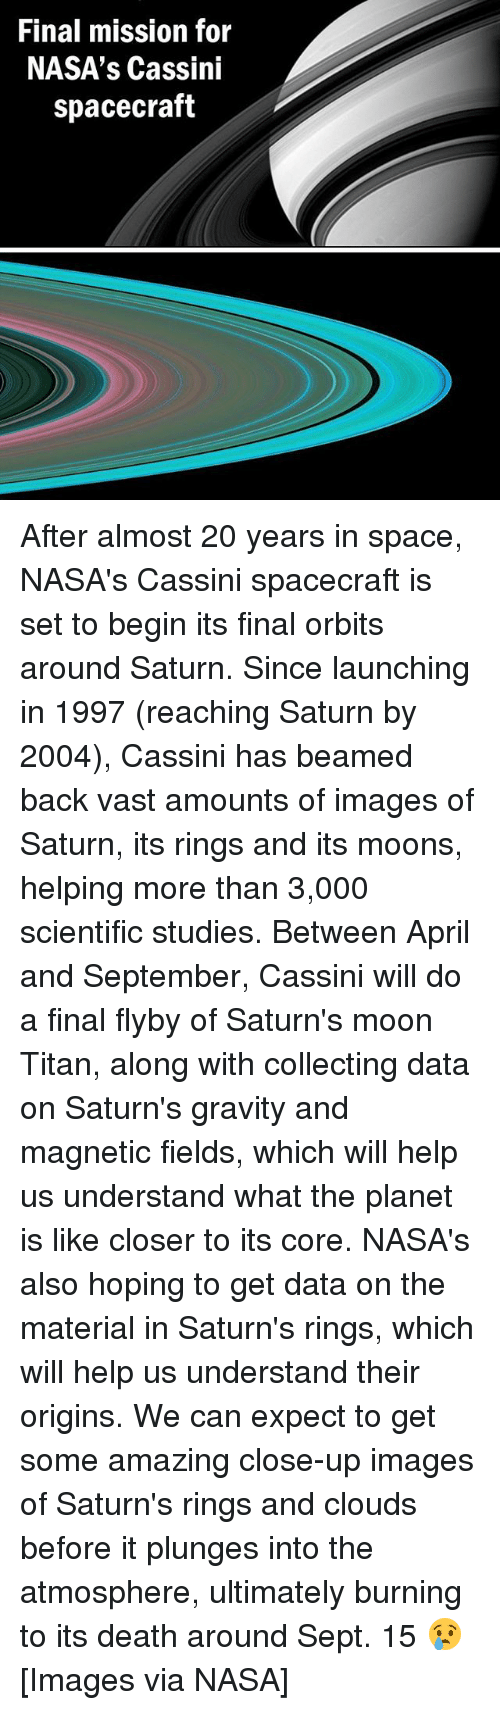 cassini: Final mission for  NASA's Cassini  spacecraft After almost 20 years in space, NASA's Cassini spacecraft is set to begin its final orbits around Saturn. Since launching in 1997 (reaching Saturn by 2004), Cassini has beamed back vast amounts of images of Saturn, its rings and its moons, helping more than 3,000 scientific studies. Between April and September, Cassini will do a final flyby of Saturn's moon Titan, along with collecting data on Saturn's gravity and magnetic fields, which will help us understand what the planet is like closer to its core. NASA's also hoping to get data on the material in Saturn's rings, which will help us understand their origins. We can expect to get some amazing close-up images of Saturn's rings and clouds before it plunges into the atmosphere, ultimately burning to its death around Sept. 15 😢️ [Images via NASA]